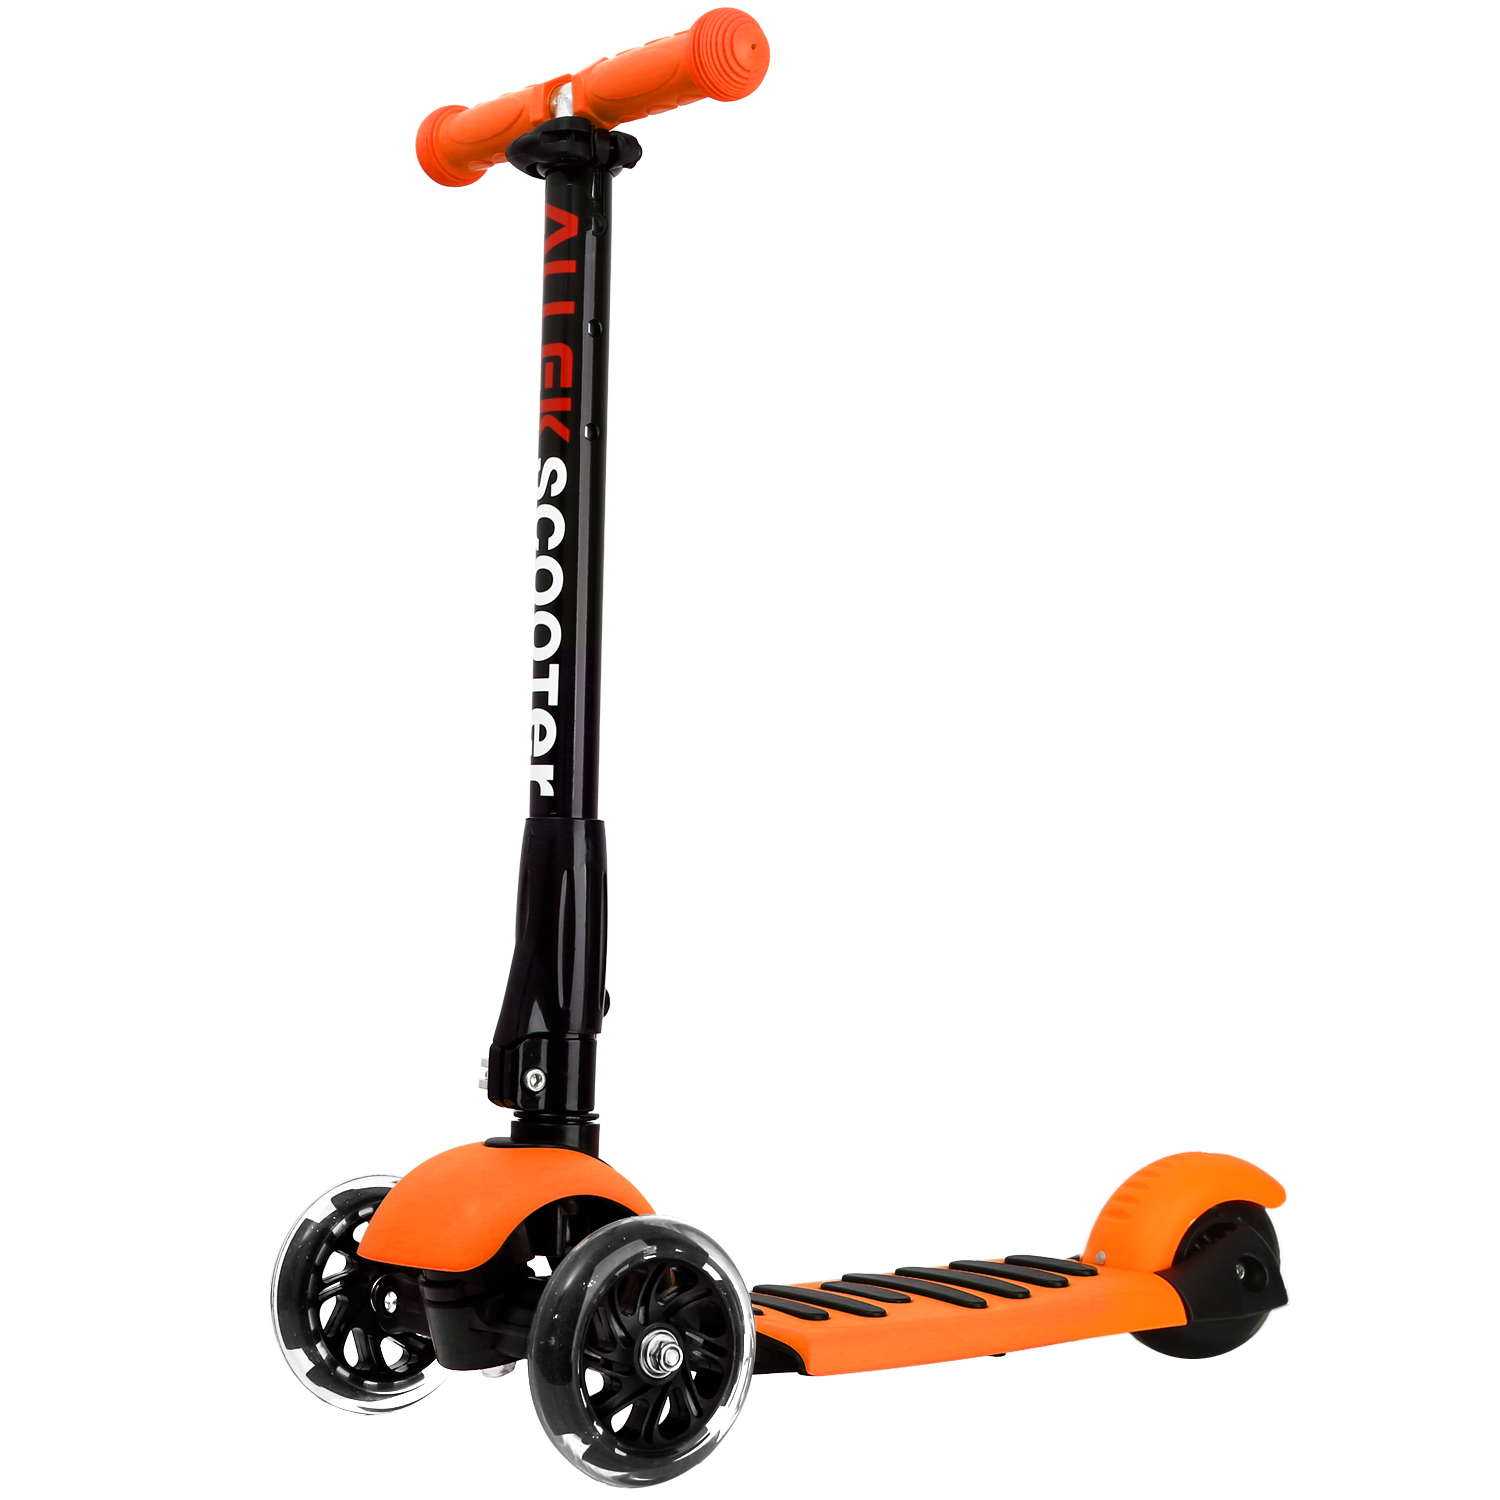 Orange Scooters Allek Foot Kick Scooter Folding 3 Wheels with LED Light Up T-bars for Kids folding kick scooters foot scooters children best birthday gift with flash pu wheels free shipping